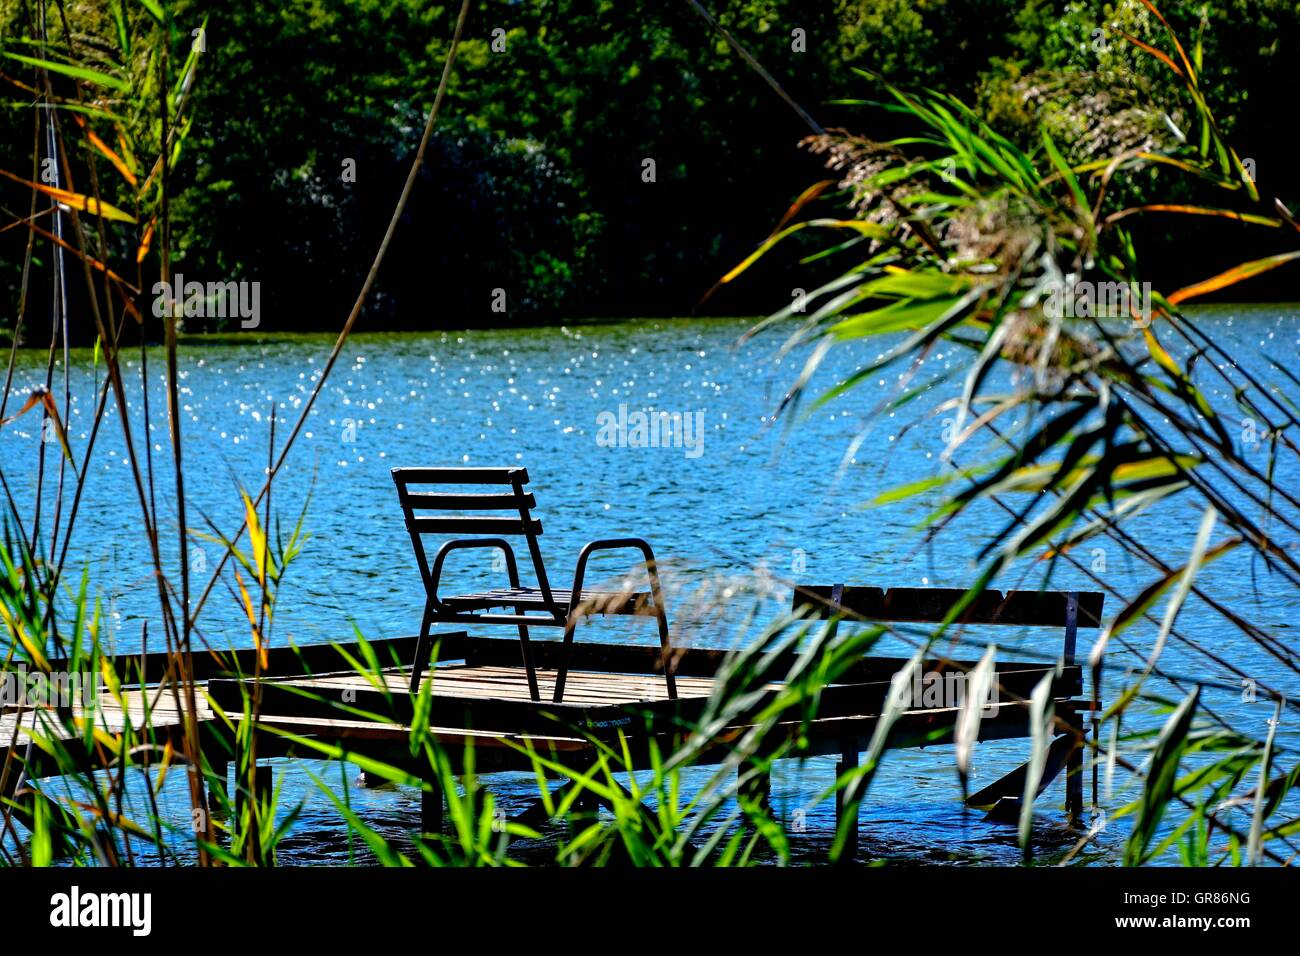 Fishing Pier With Chair And Fishing Waters - Stock Image